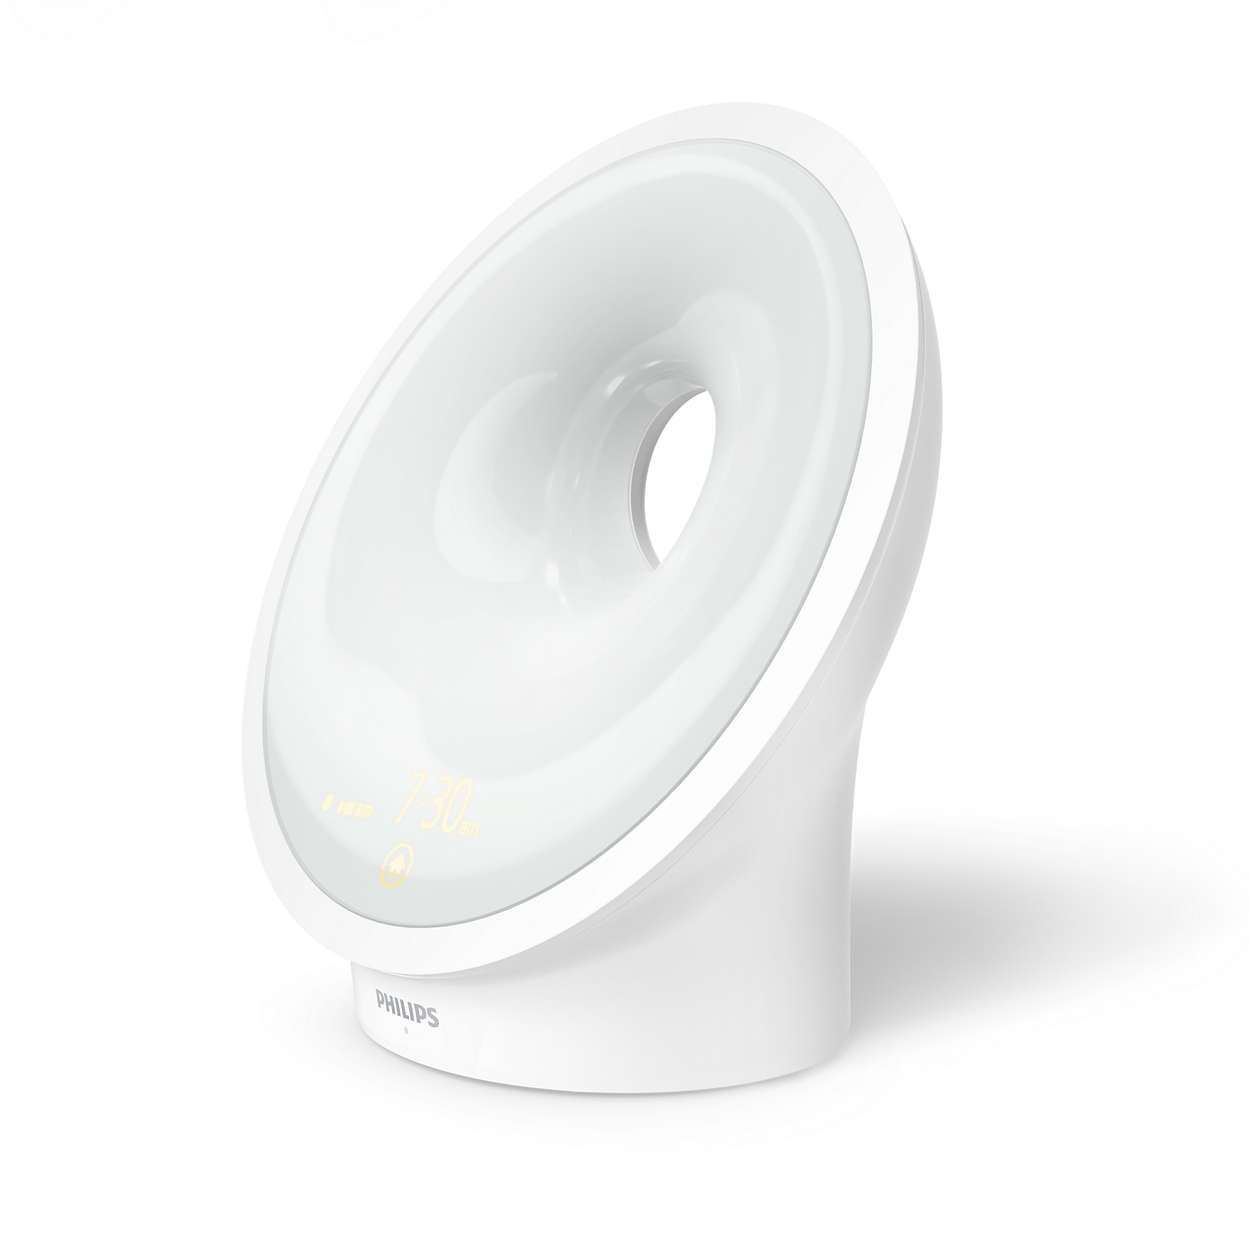 The Wake-Up Light that helps you sleep